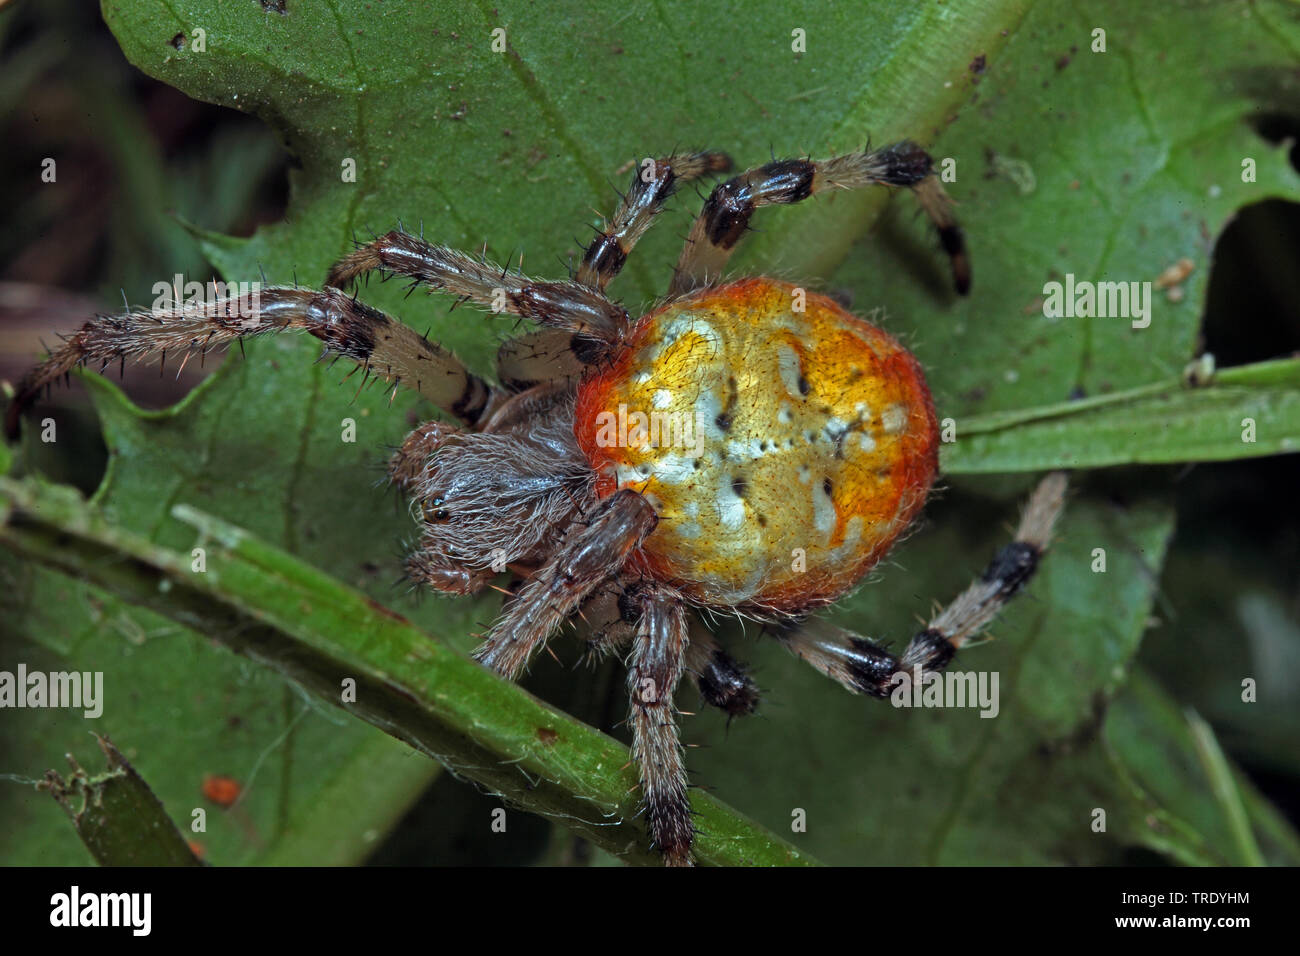 Vierfleck-Kreuzspinne, Vierfleckkreuzspinne (Araneus quadratus), Aufsicht, Deutschland | fourspotted orbweaver (Araneus quadratus), top view, Germany - Stock Image